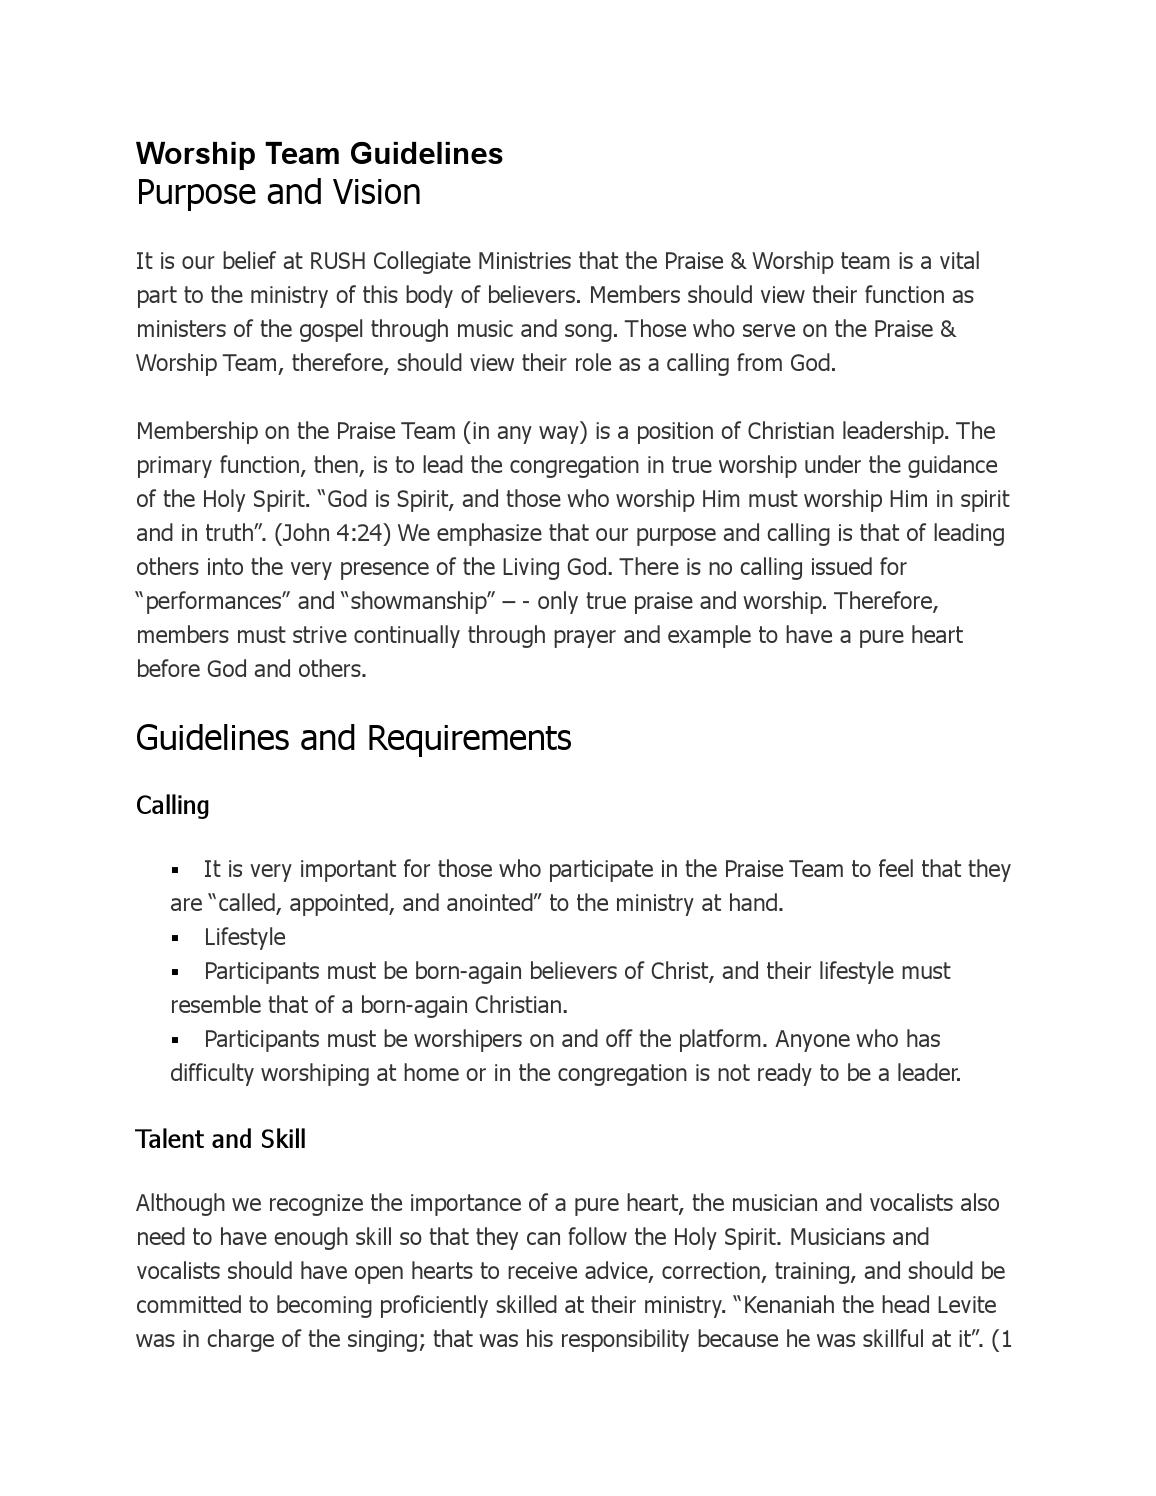 worship team guidelines by rush collegiateministries issuu rh issuu com worship team guidelines pdf worship team guidelines and rules